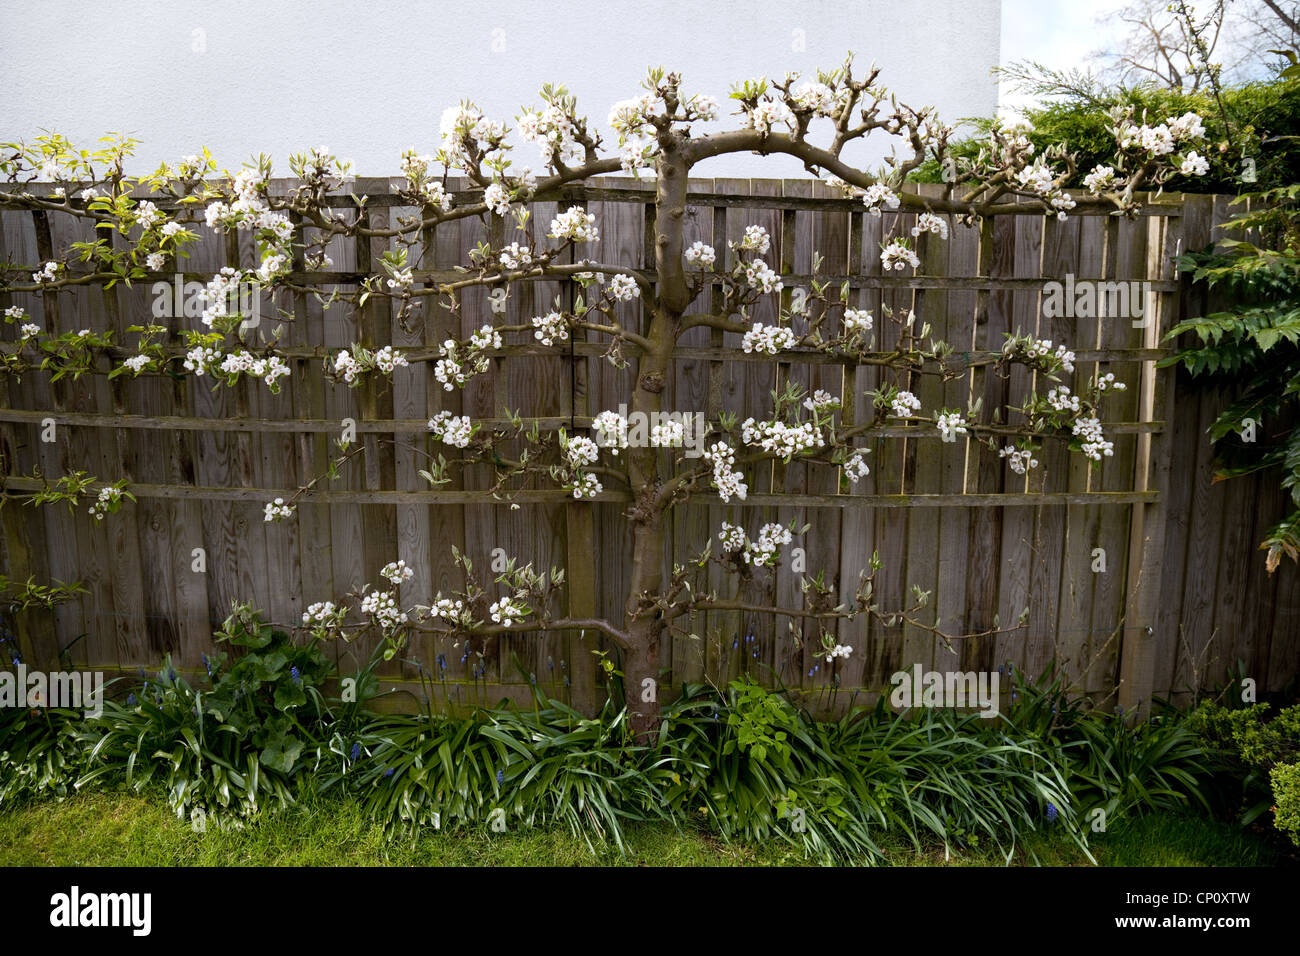 Espalier pear tree against a fence in spring, UK - Stock Image